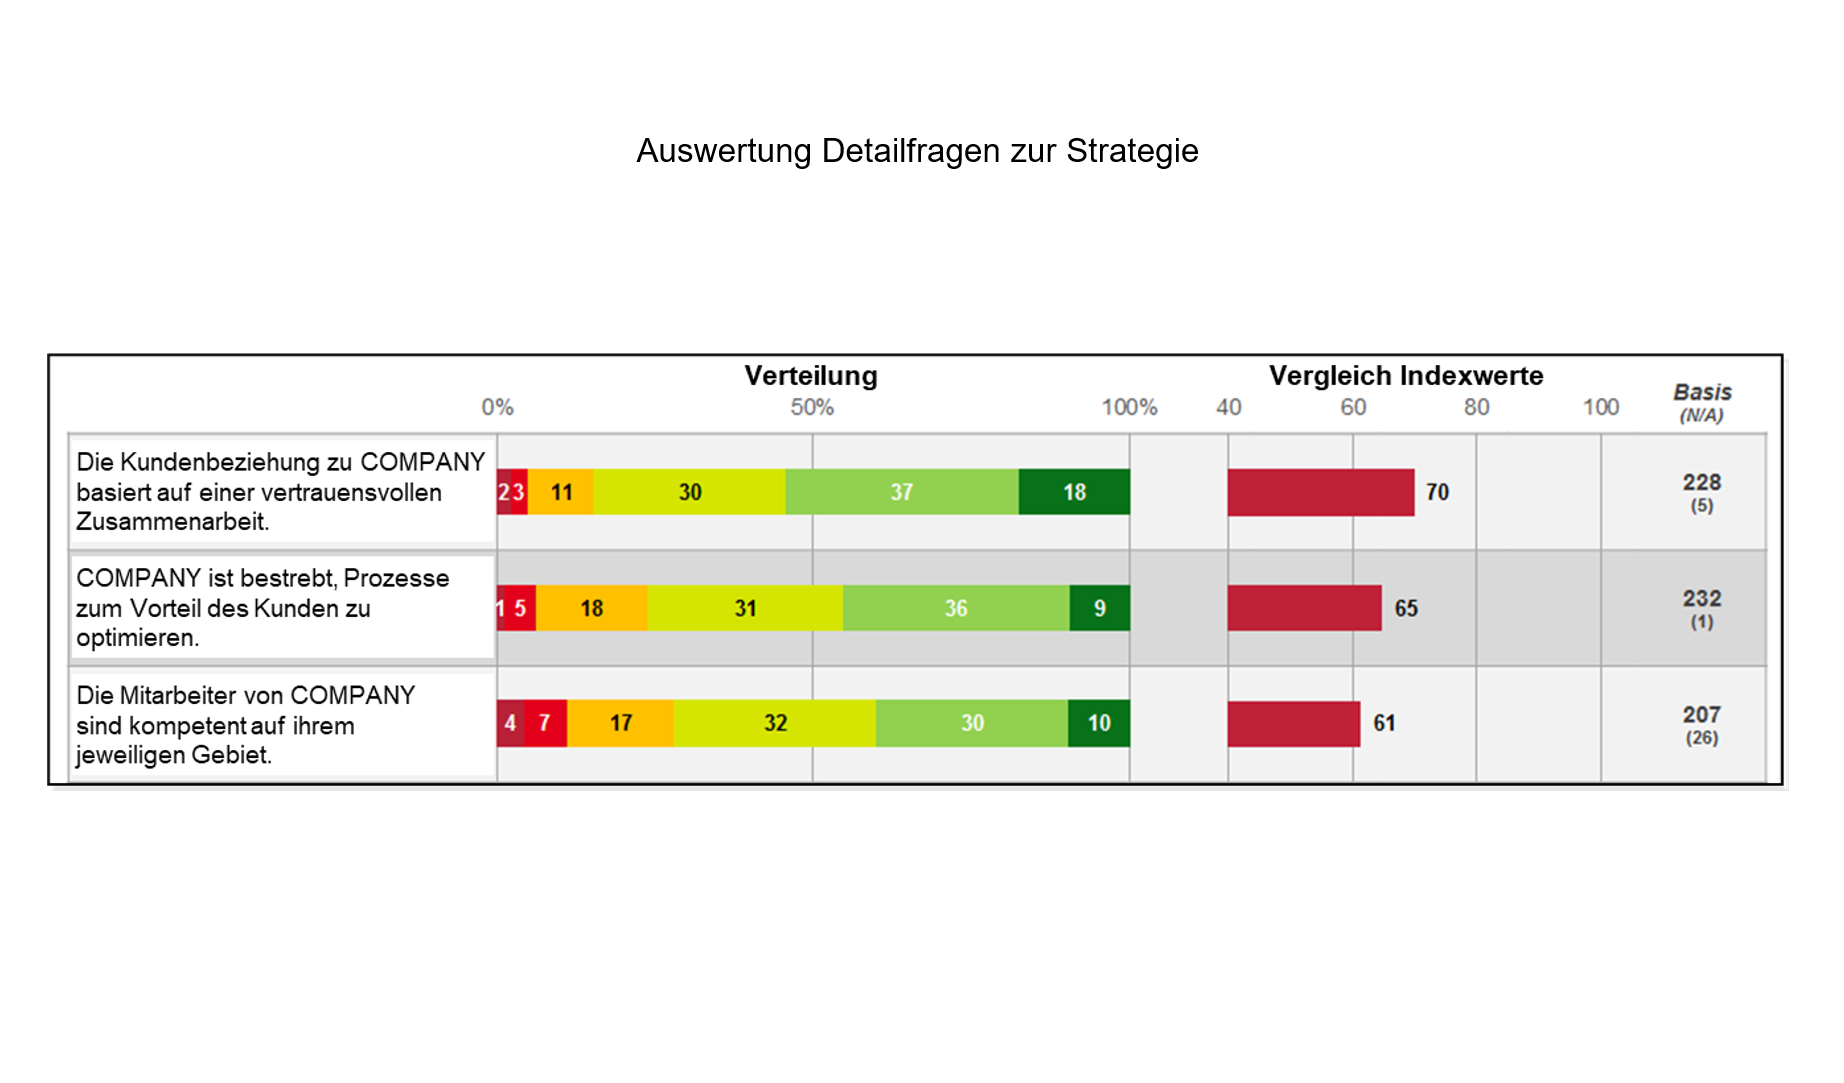 B2B Auswertung Detailfragen zu Strategie